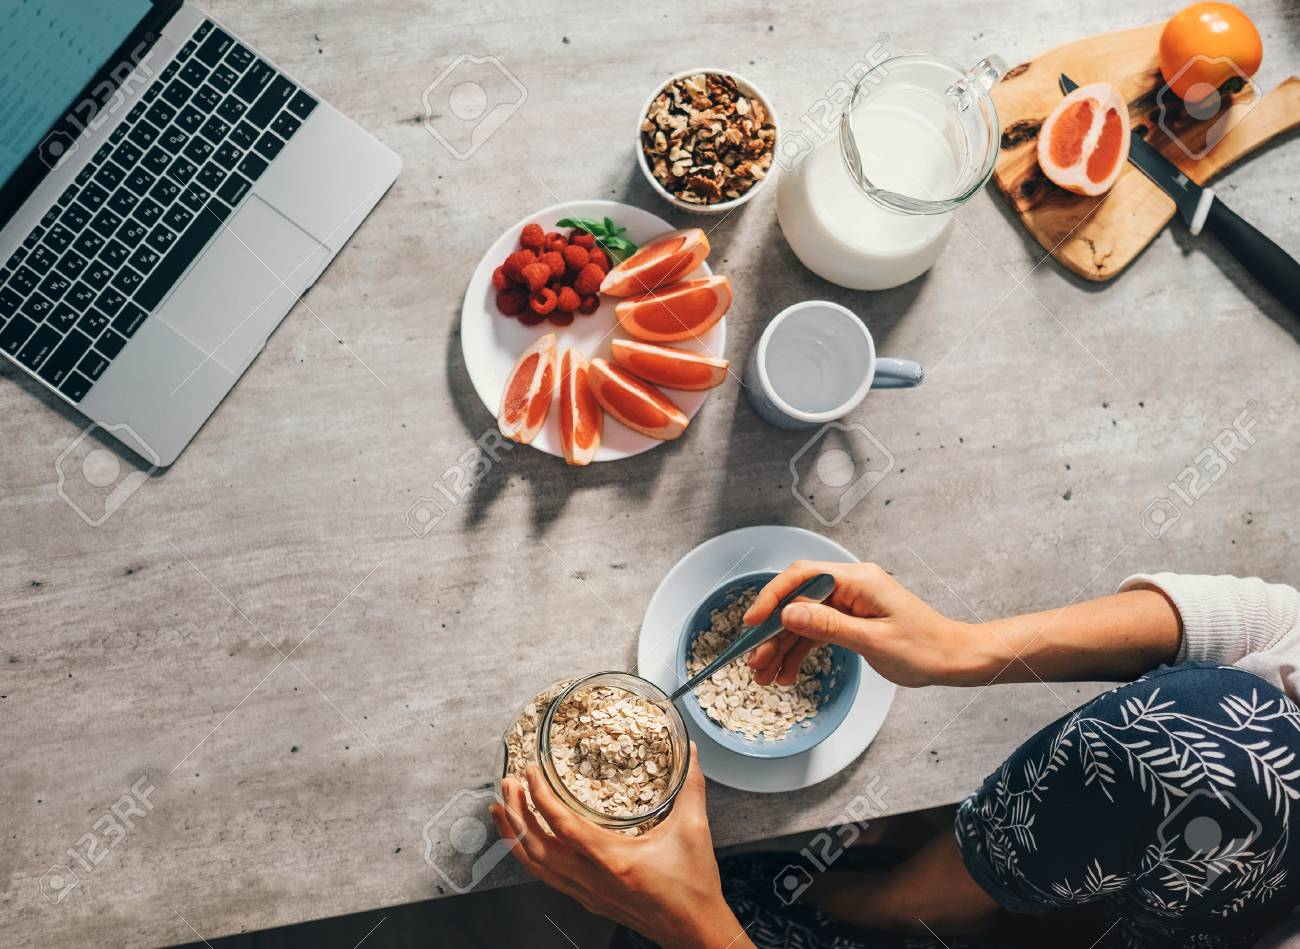 Morning time - woman prepare healthy breakfast. Top view. - 90701755